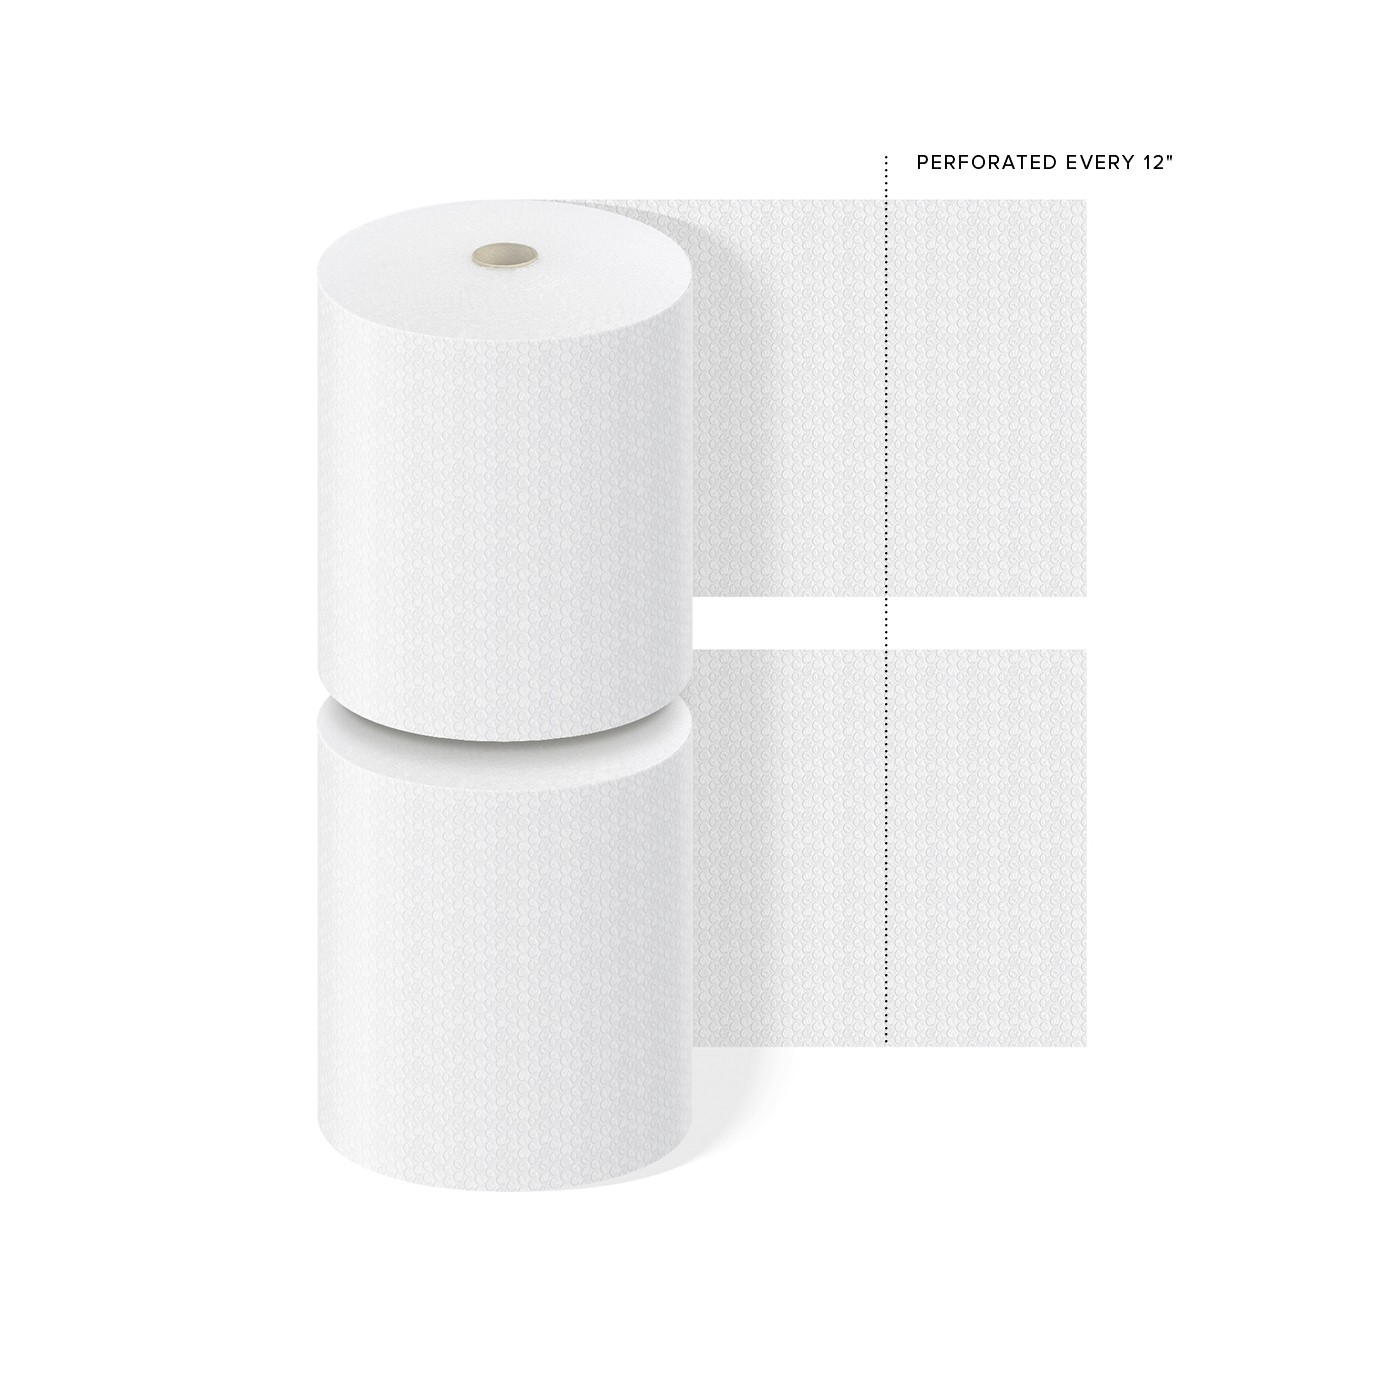 "TOTALPACK® 5/16"" x 24"" x 188' Perforated Every 12"", Air Bubble 2 Rolls"